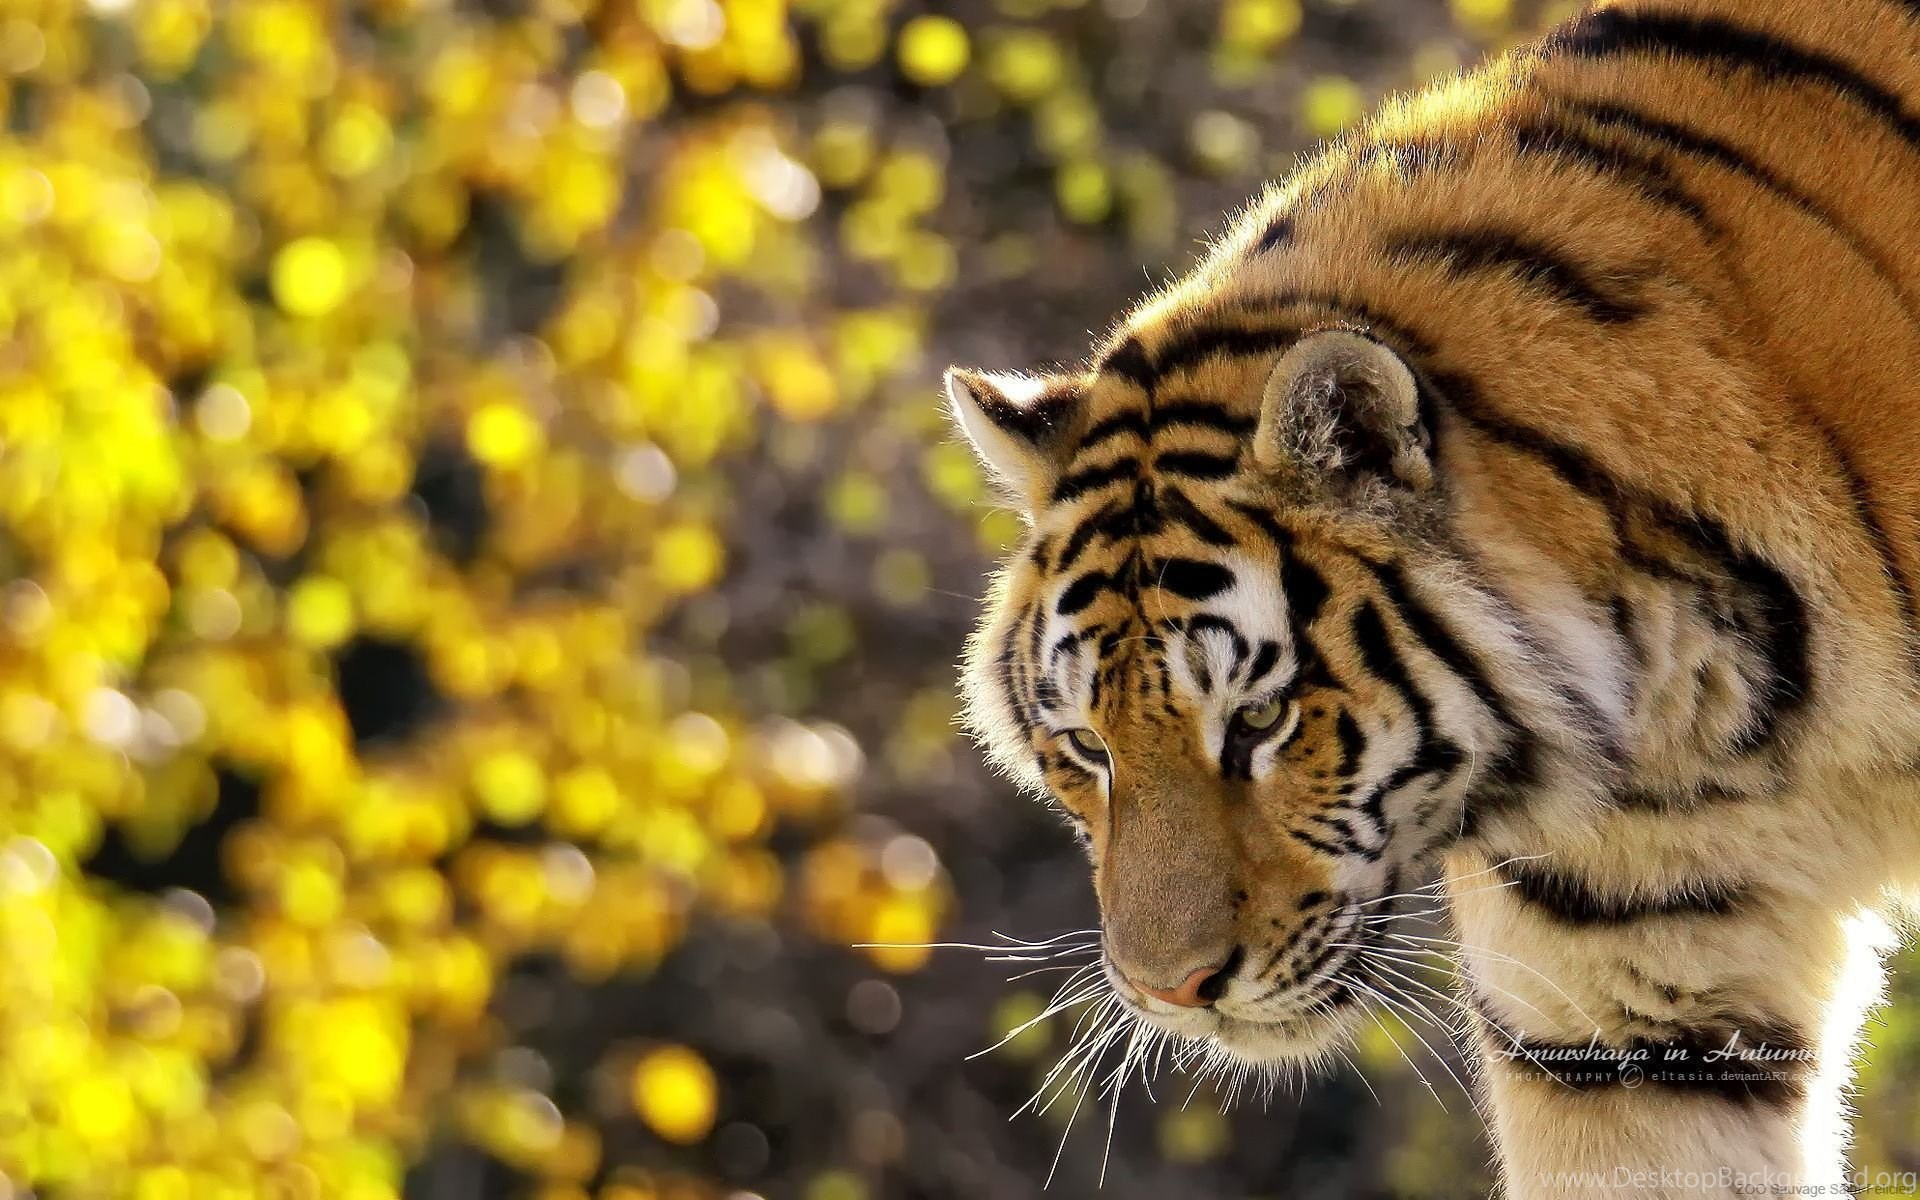 tiger windows backgrounds high resolution wallpapers / wallpapers